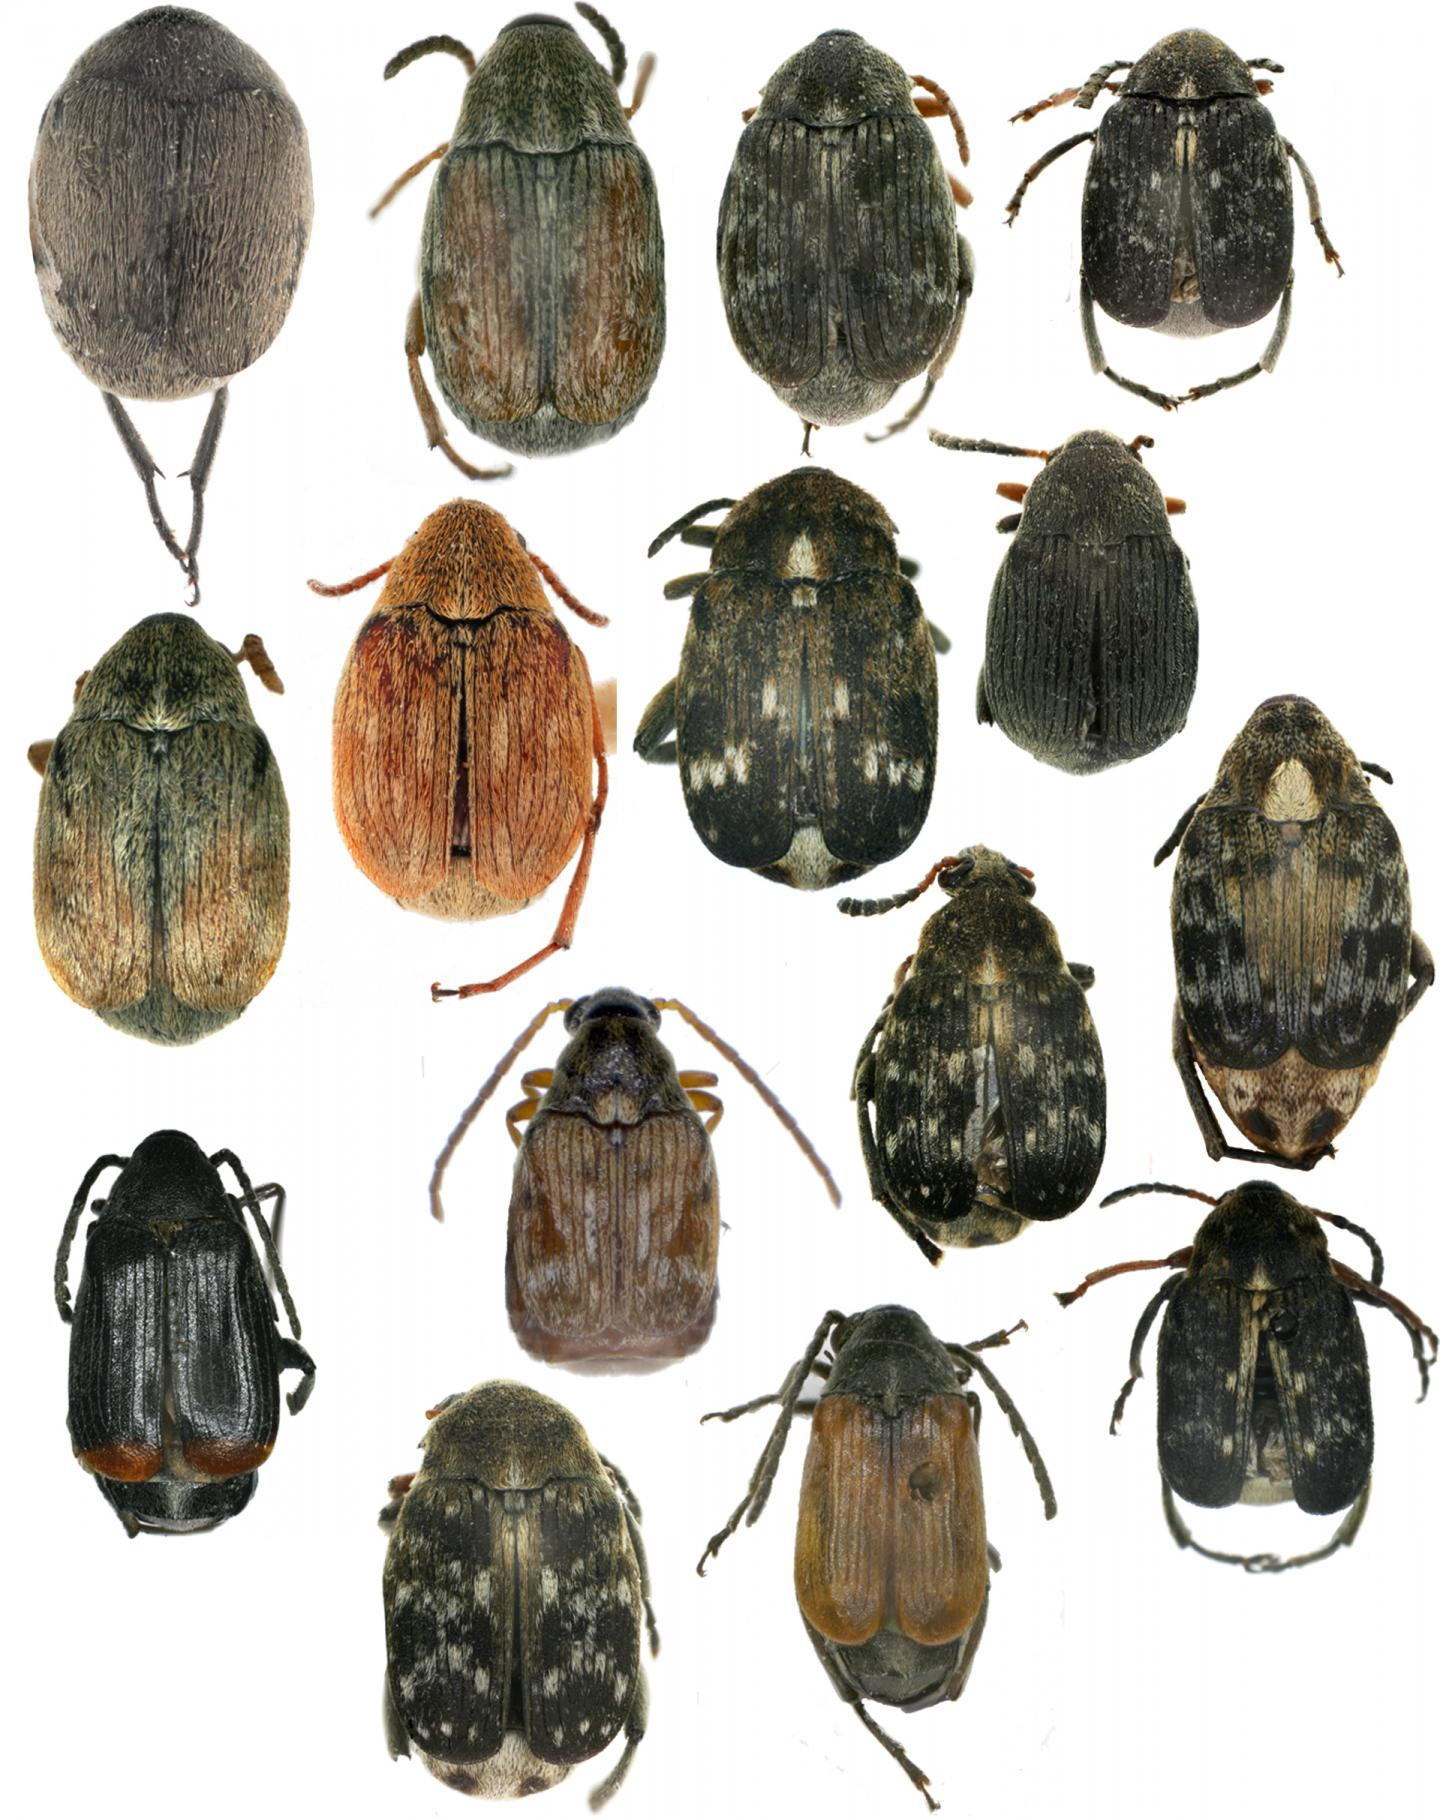 This image shows some of the seed beetles found in Xinjiang, China.